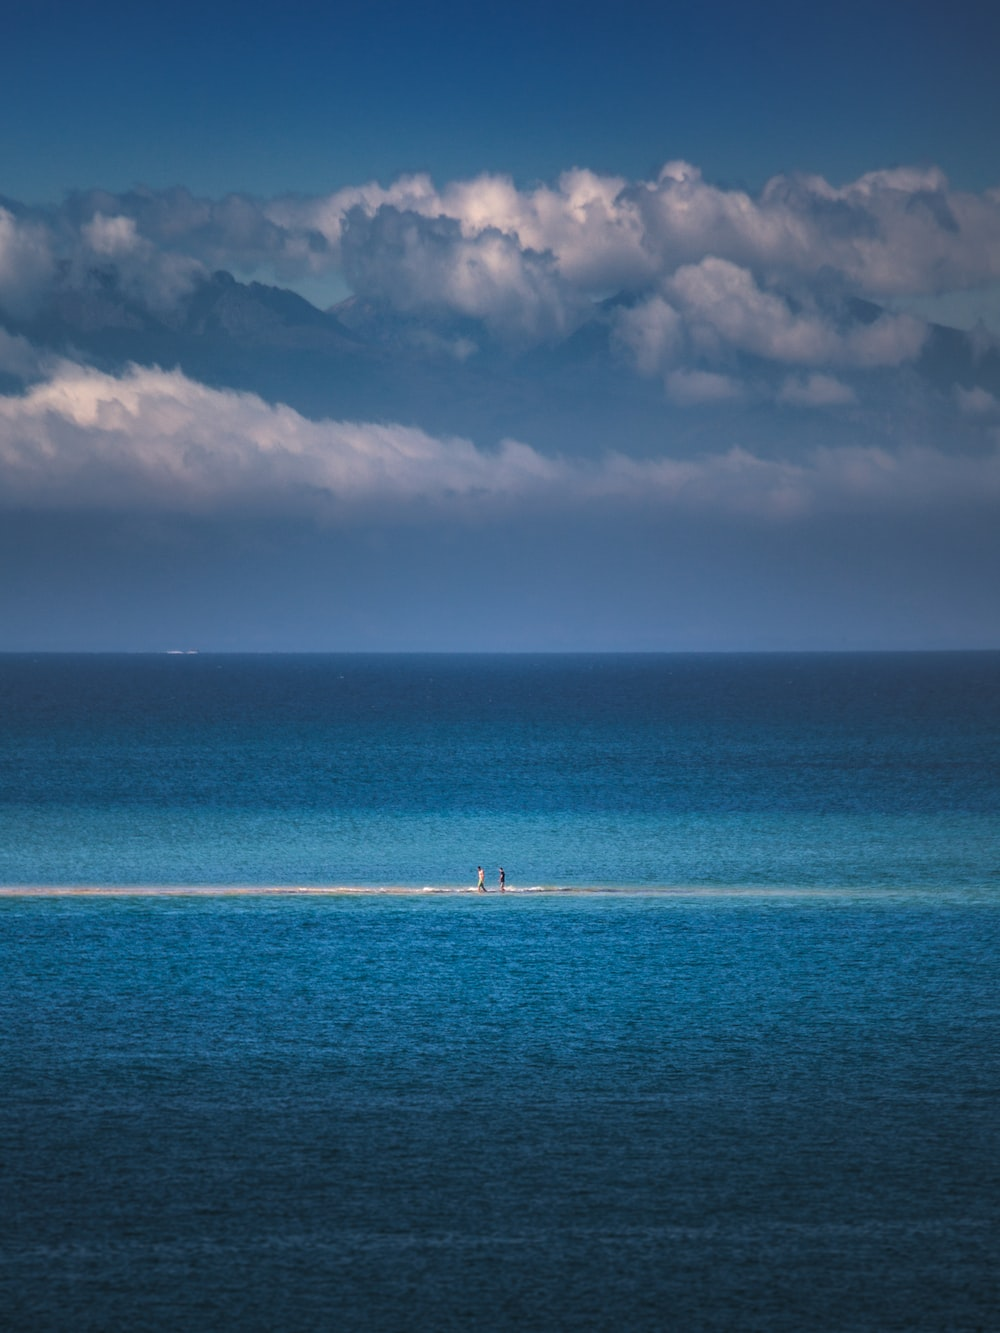 blue sea under white clouds and blue sky during daytime